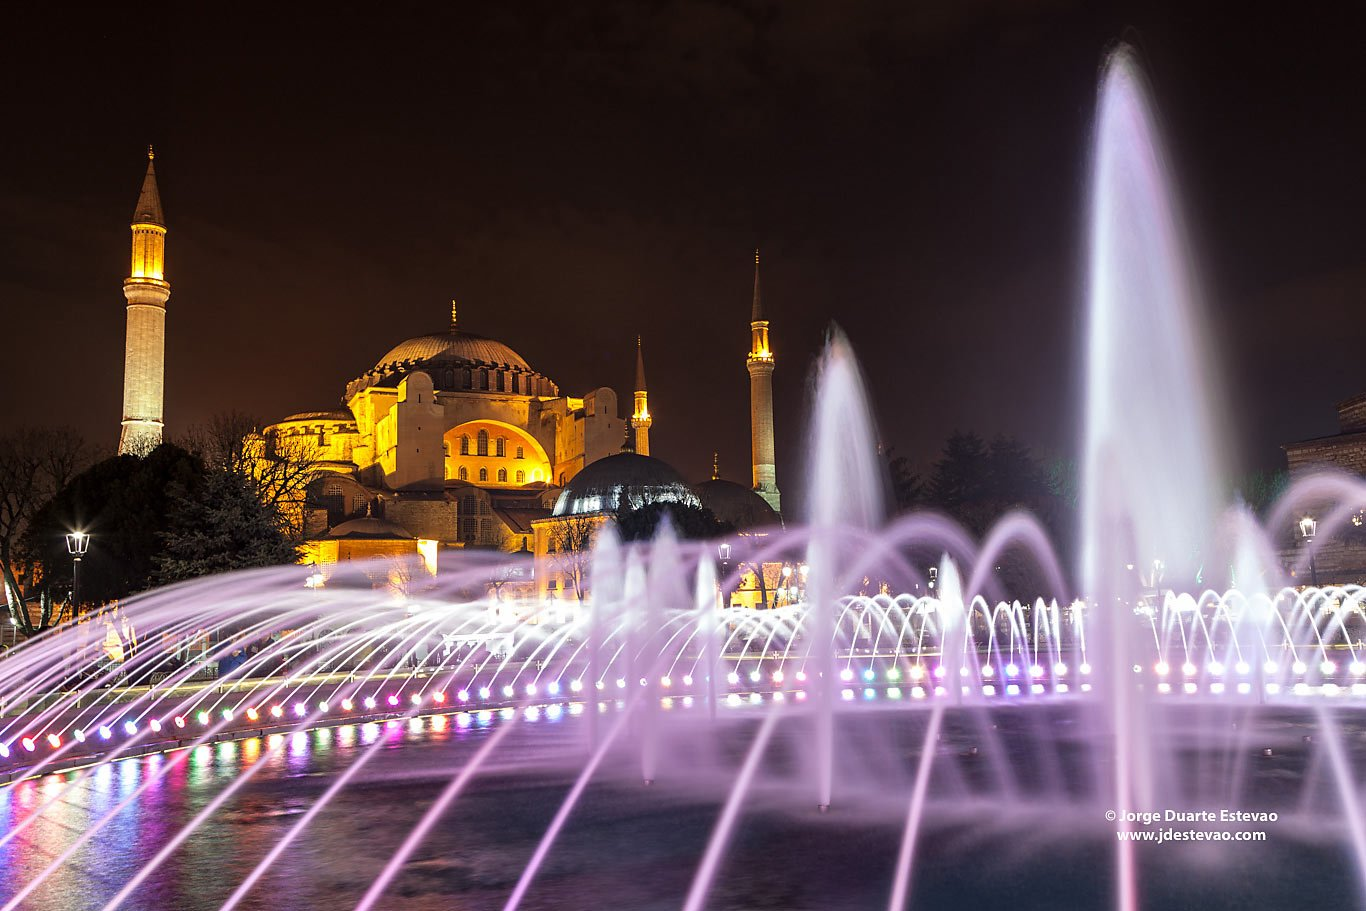 water fountain Hagia Sophia museum night Istanbul Turkey